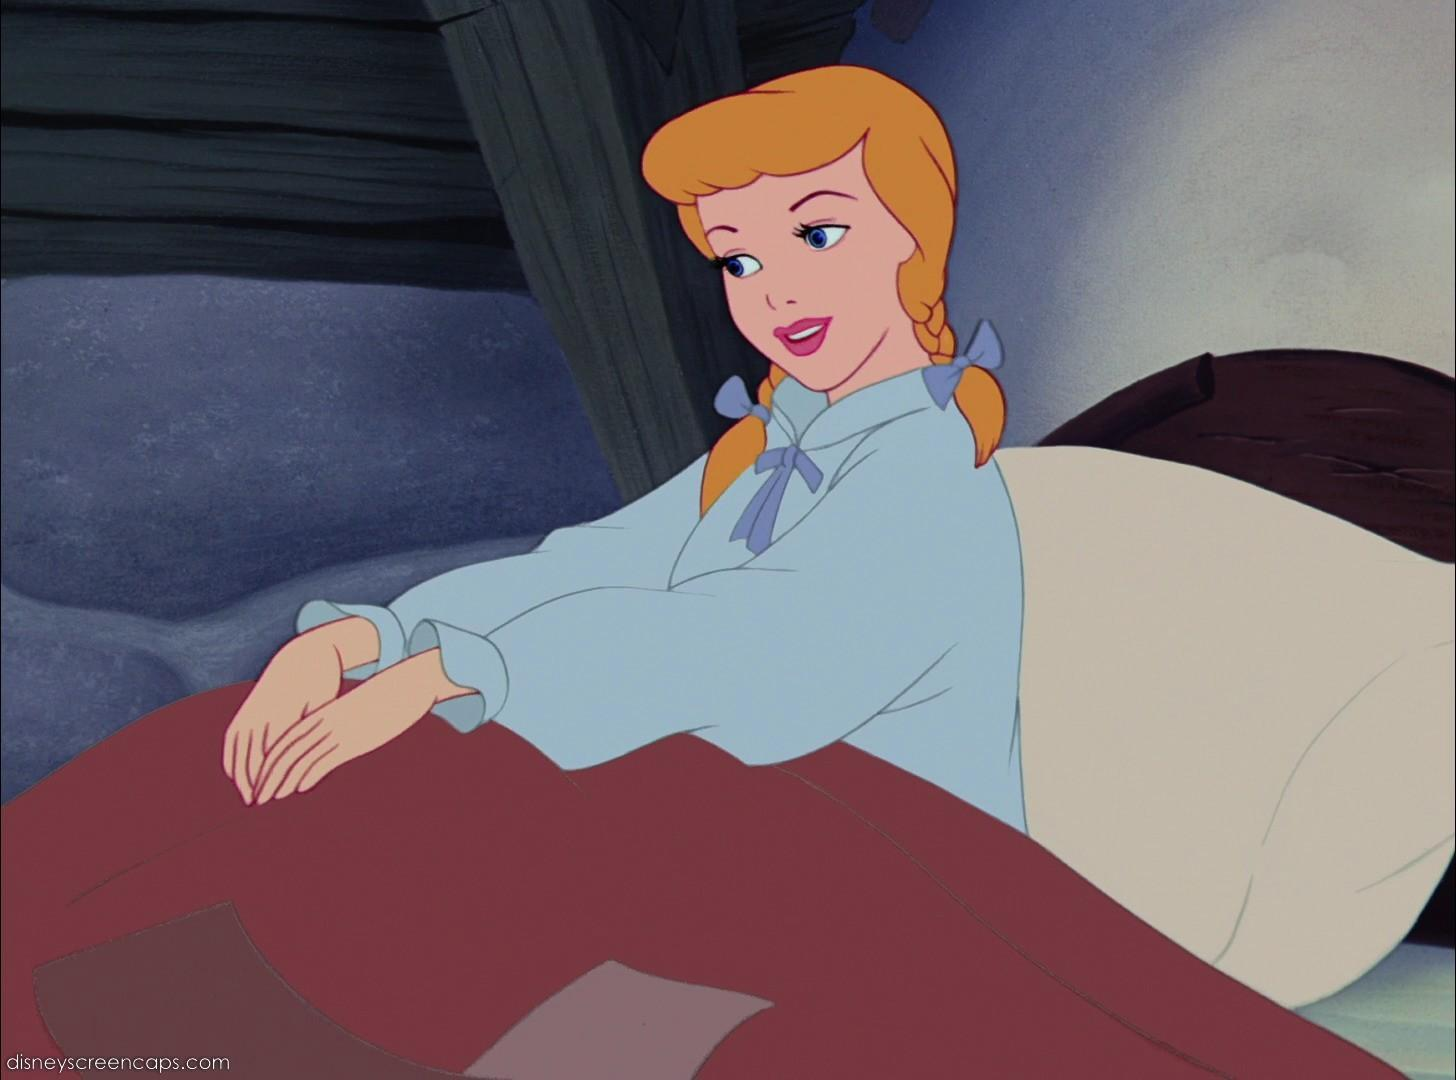 What song does Cinderella sing when she wakes up?